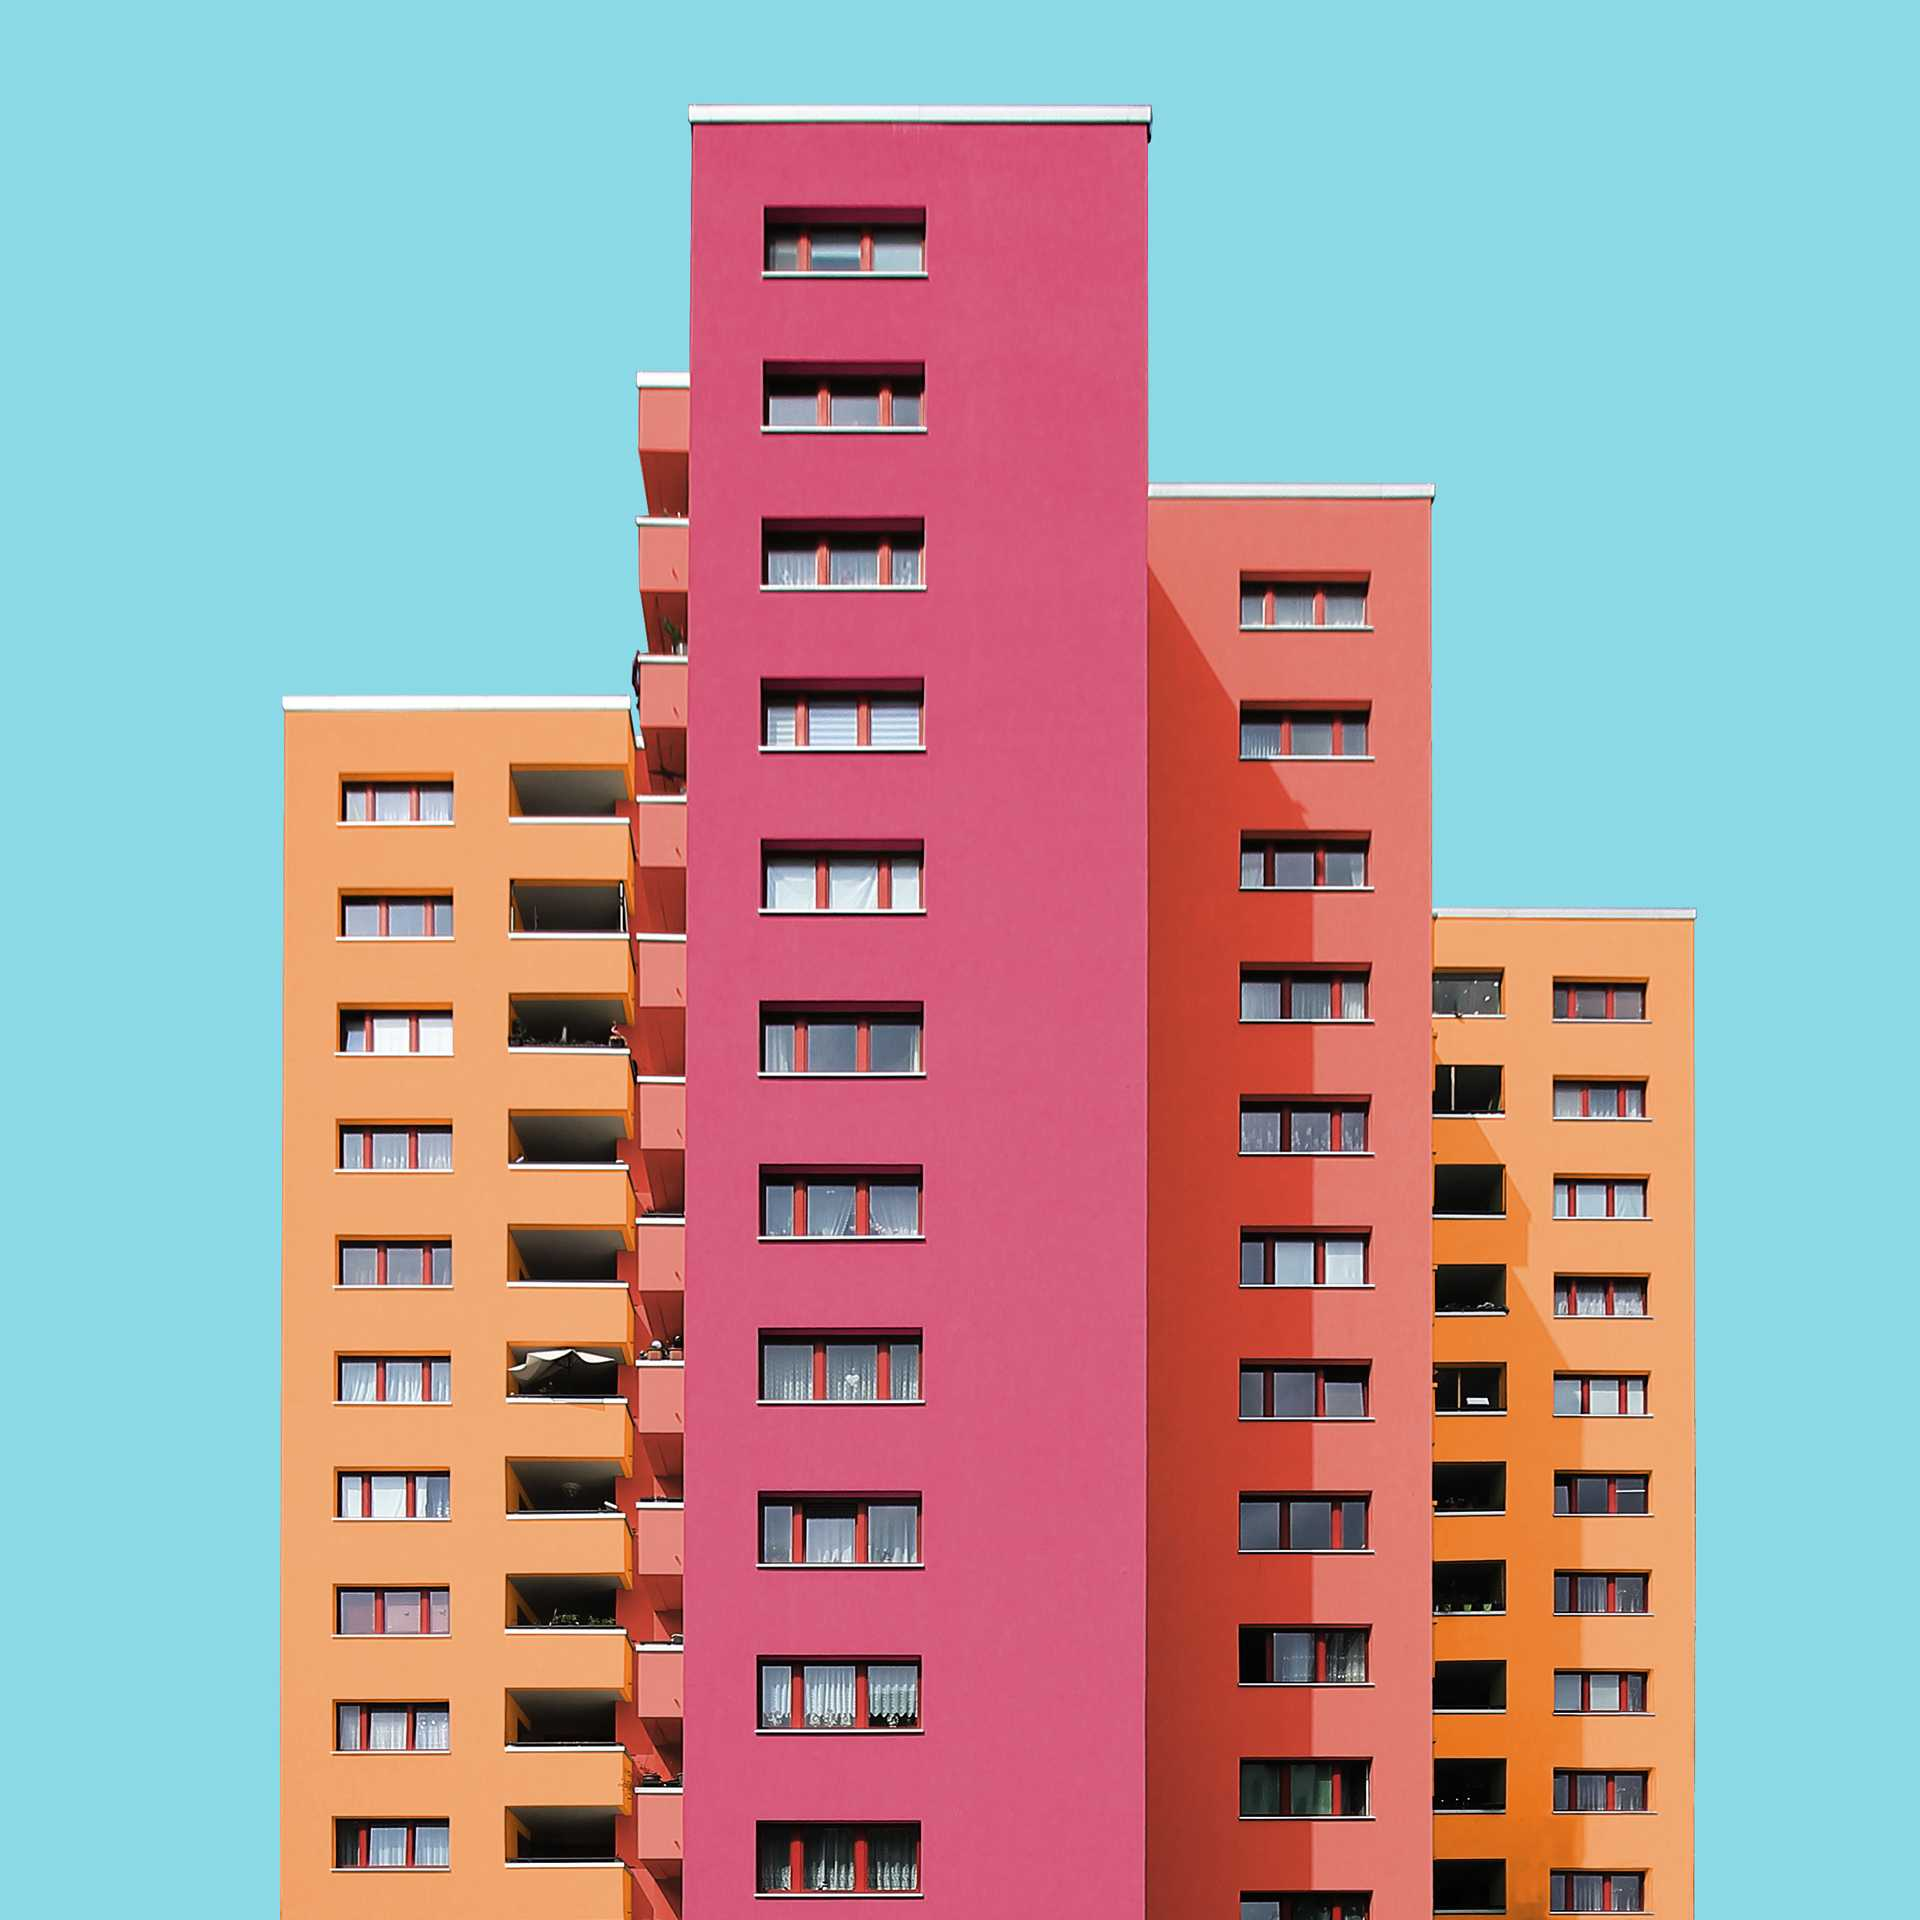 A Colorful Makeover of Architecture  - 55 3 37